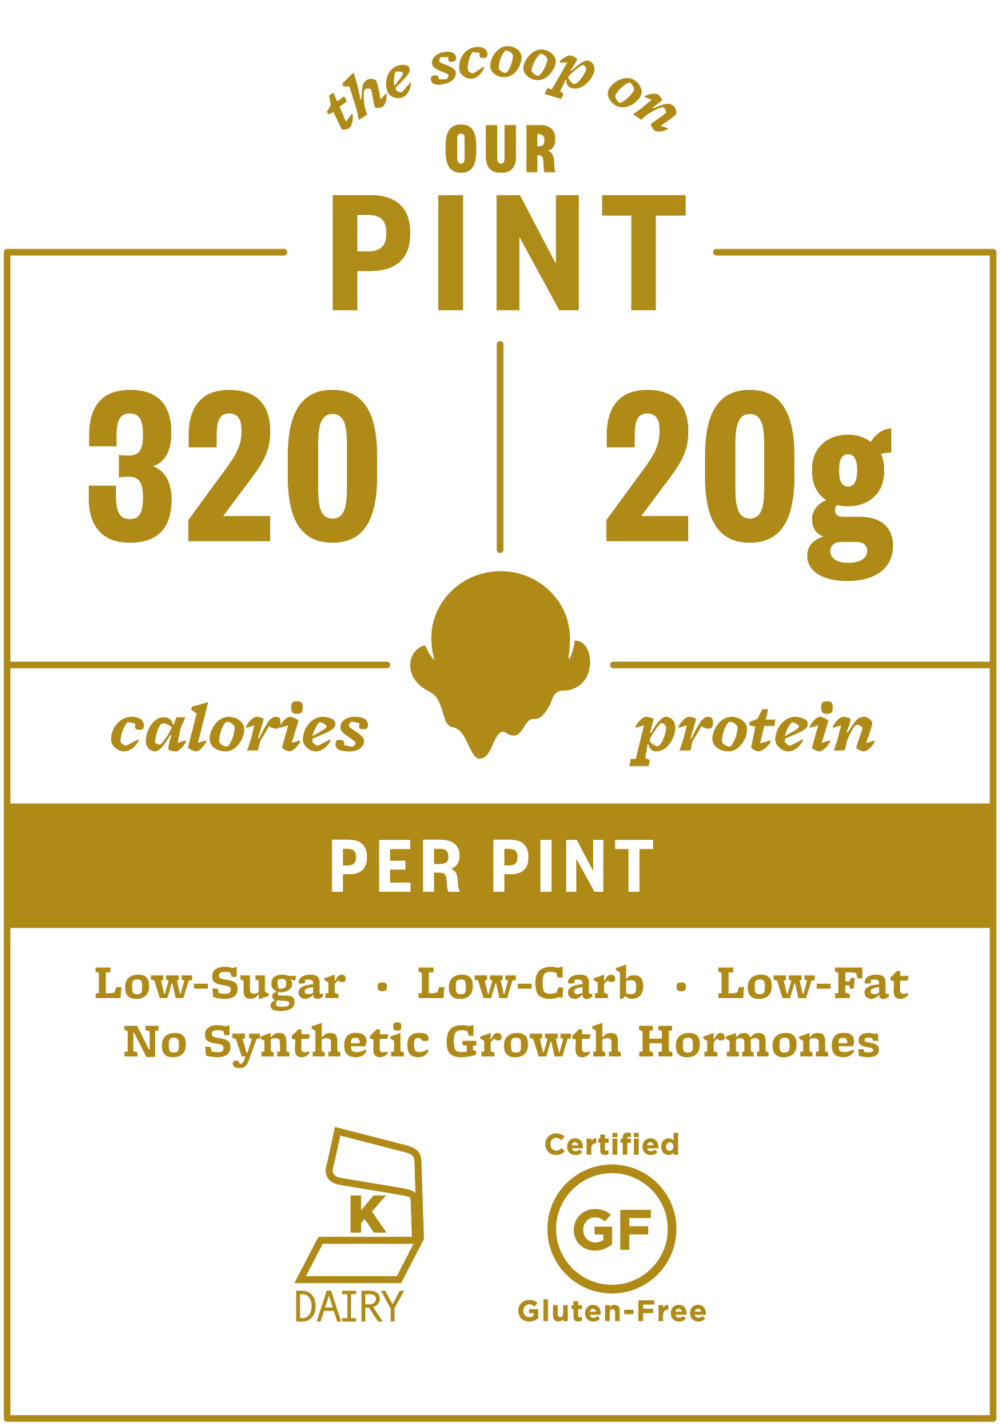 HT_Flavors_Scoop-Facts_170320_320cal-20g.png